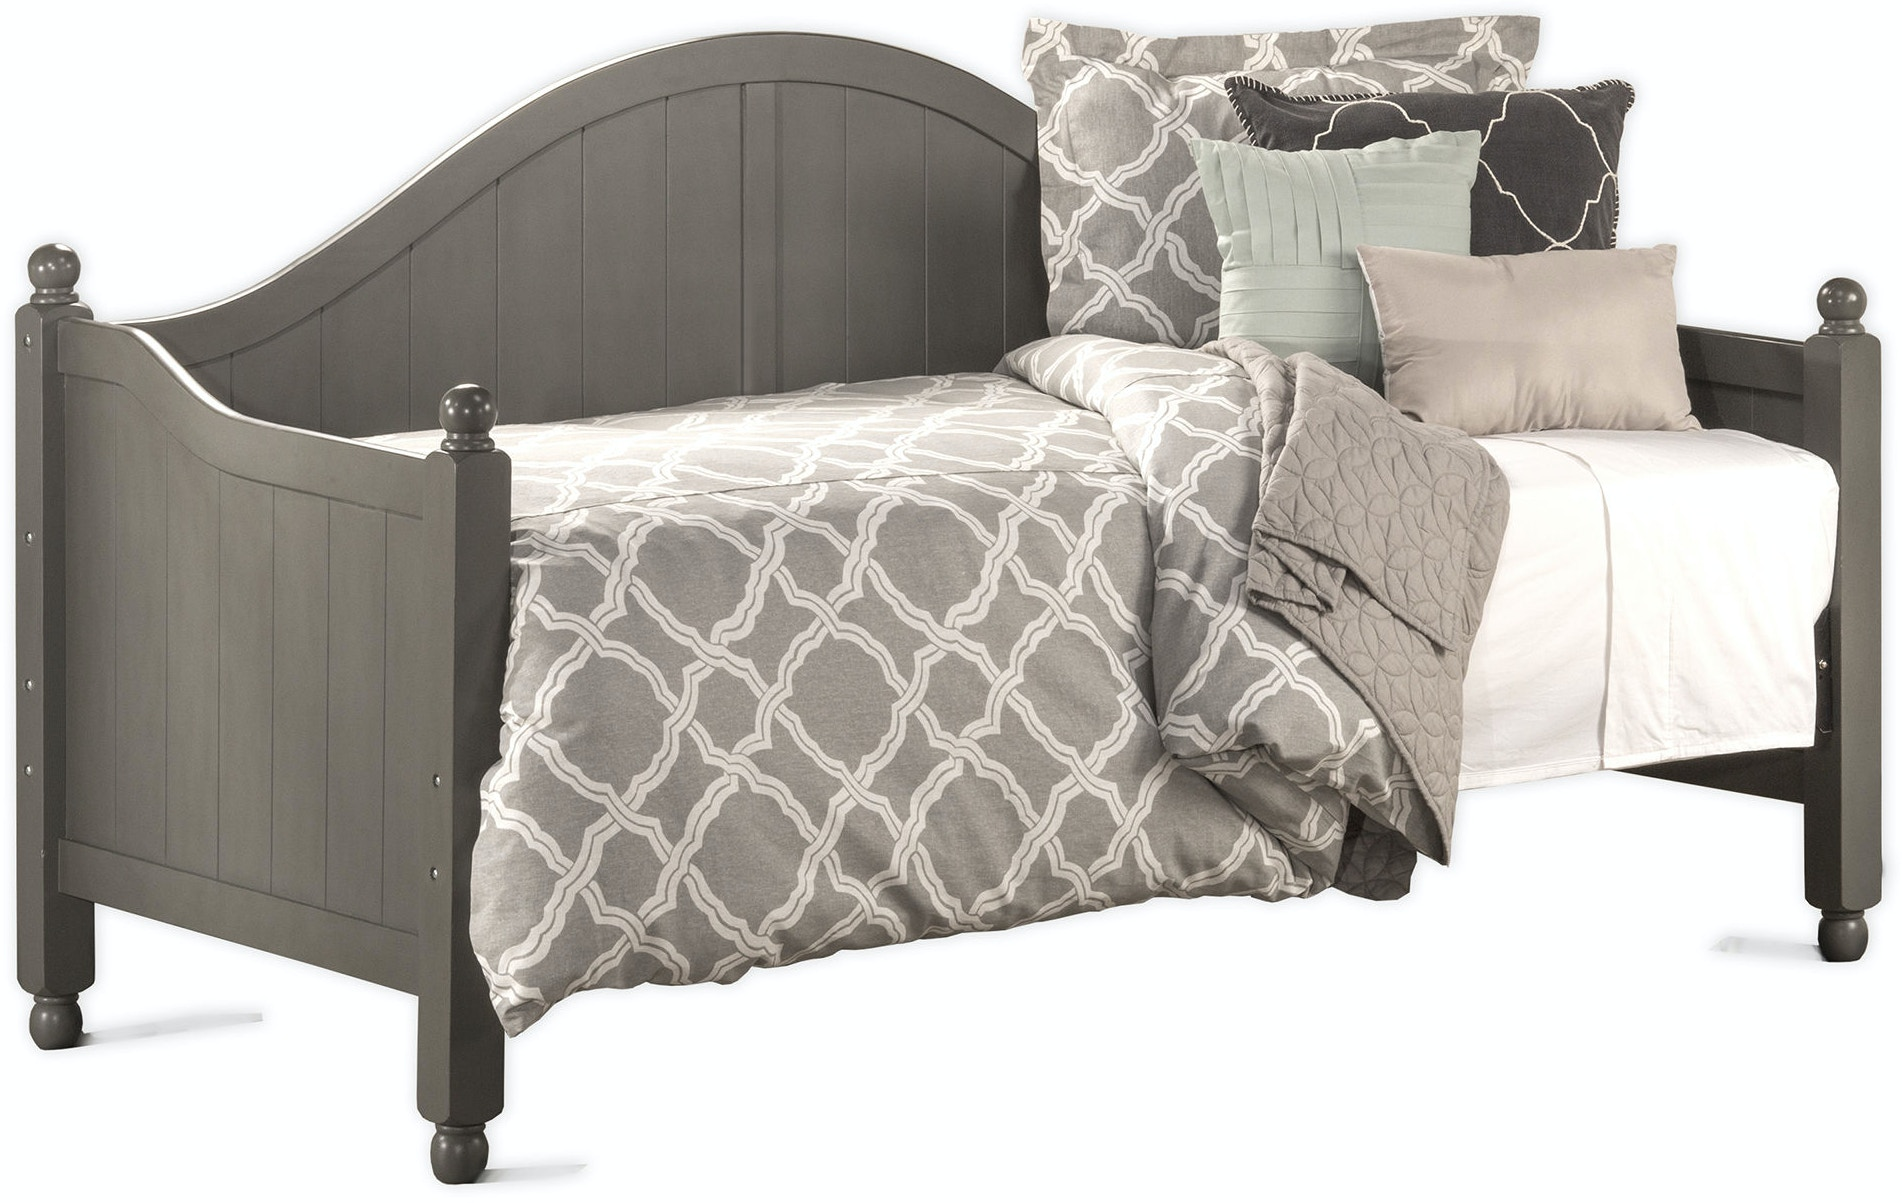 Hillsdale Furniture Bedroom Augusta Daybed Stone